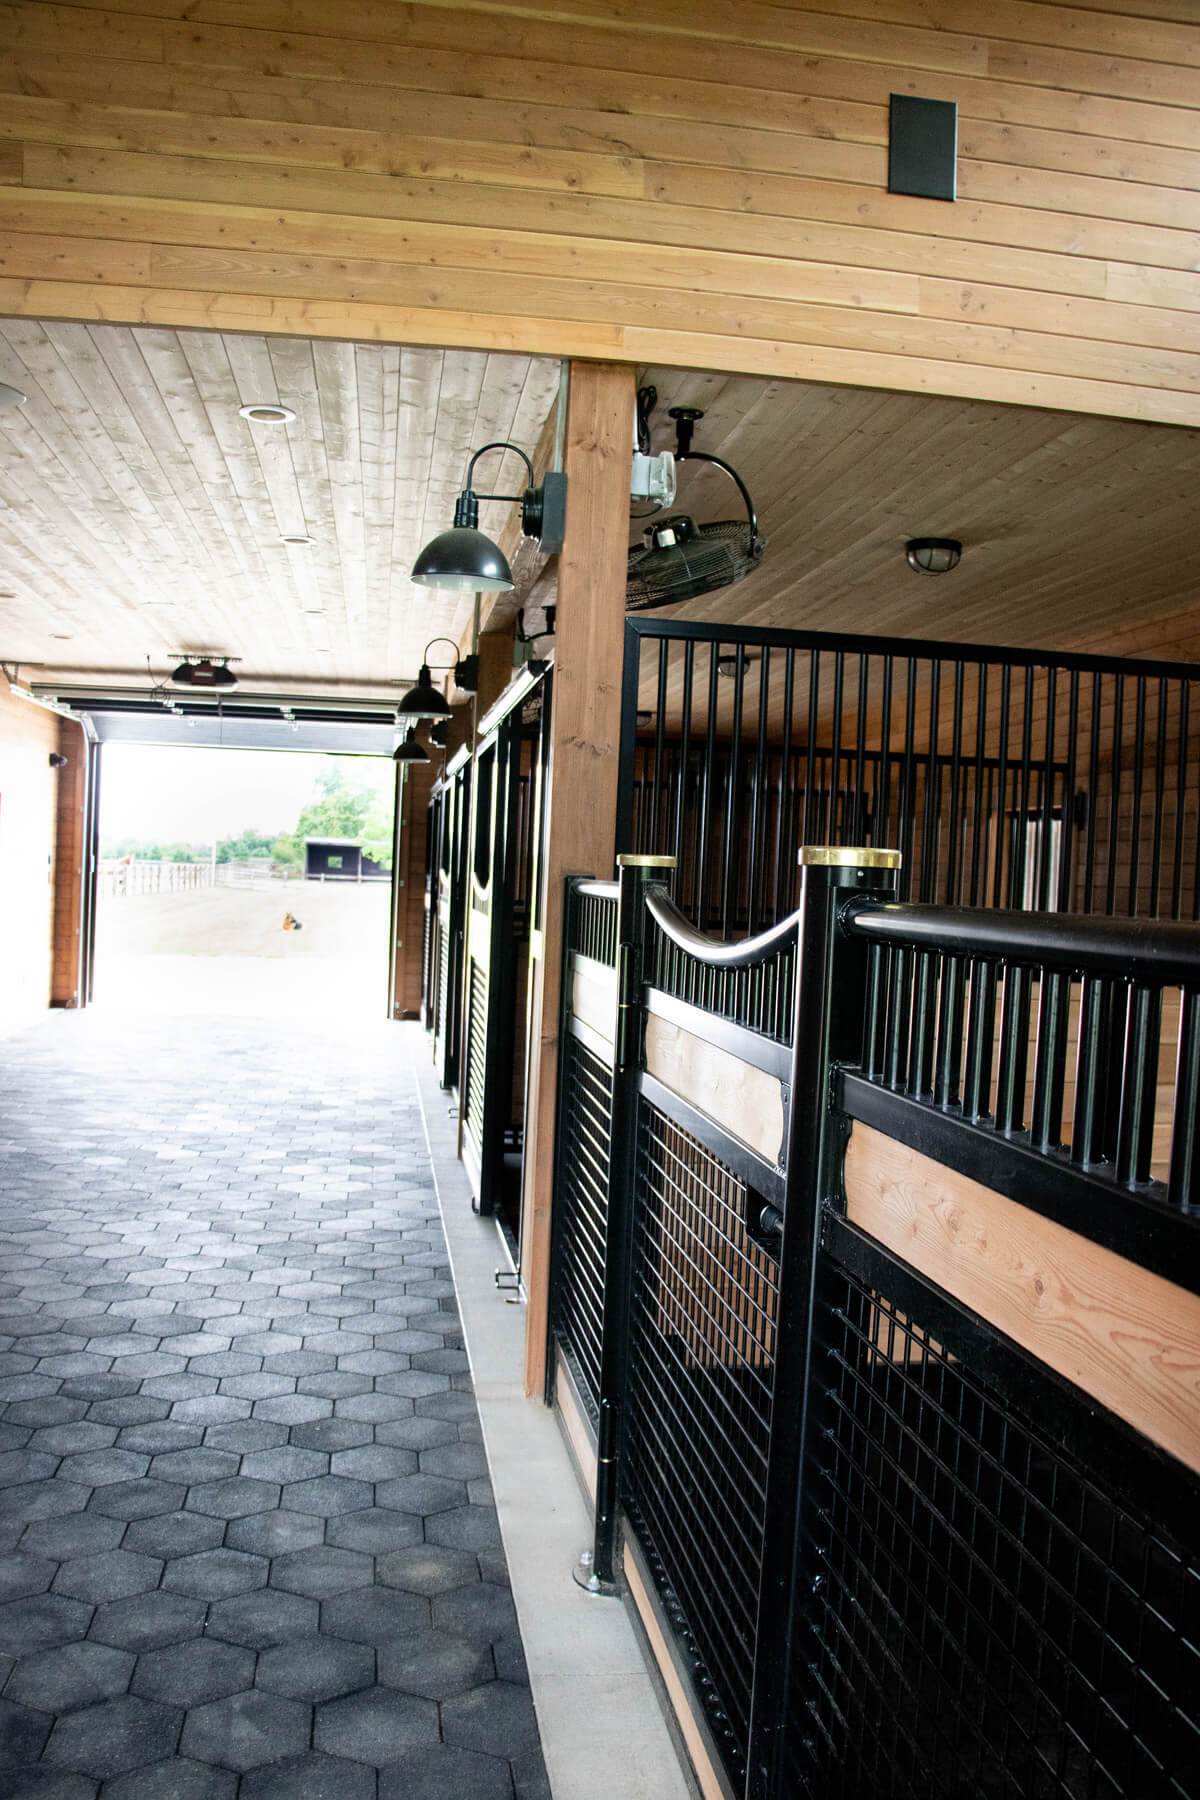 Twin Cities New Construction Barn Pros Equestrian Barn Stillwater Minnesota horse stalls built by Red Pine Builders